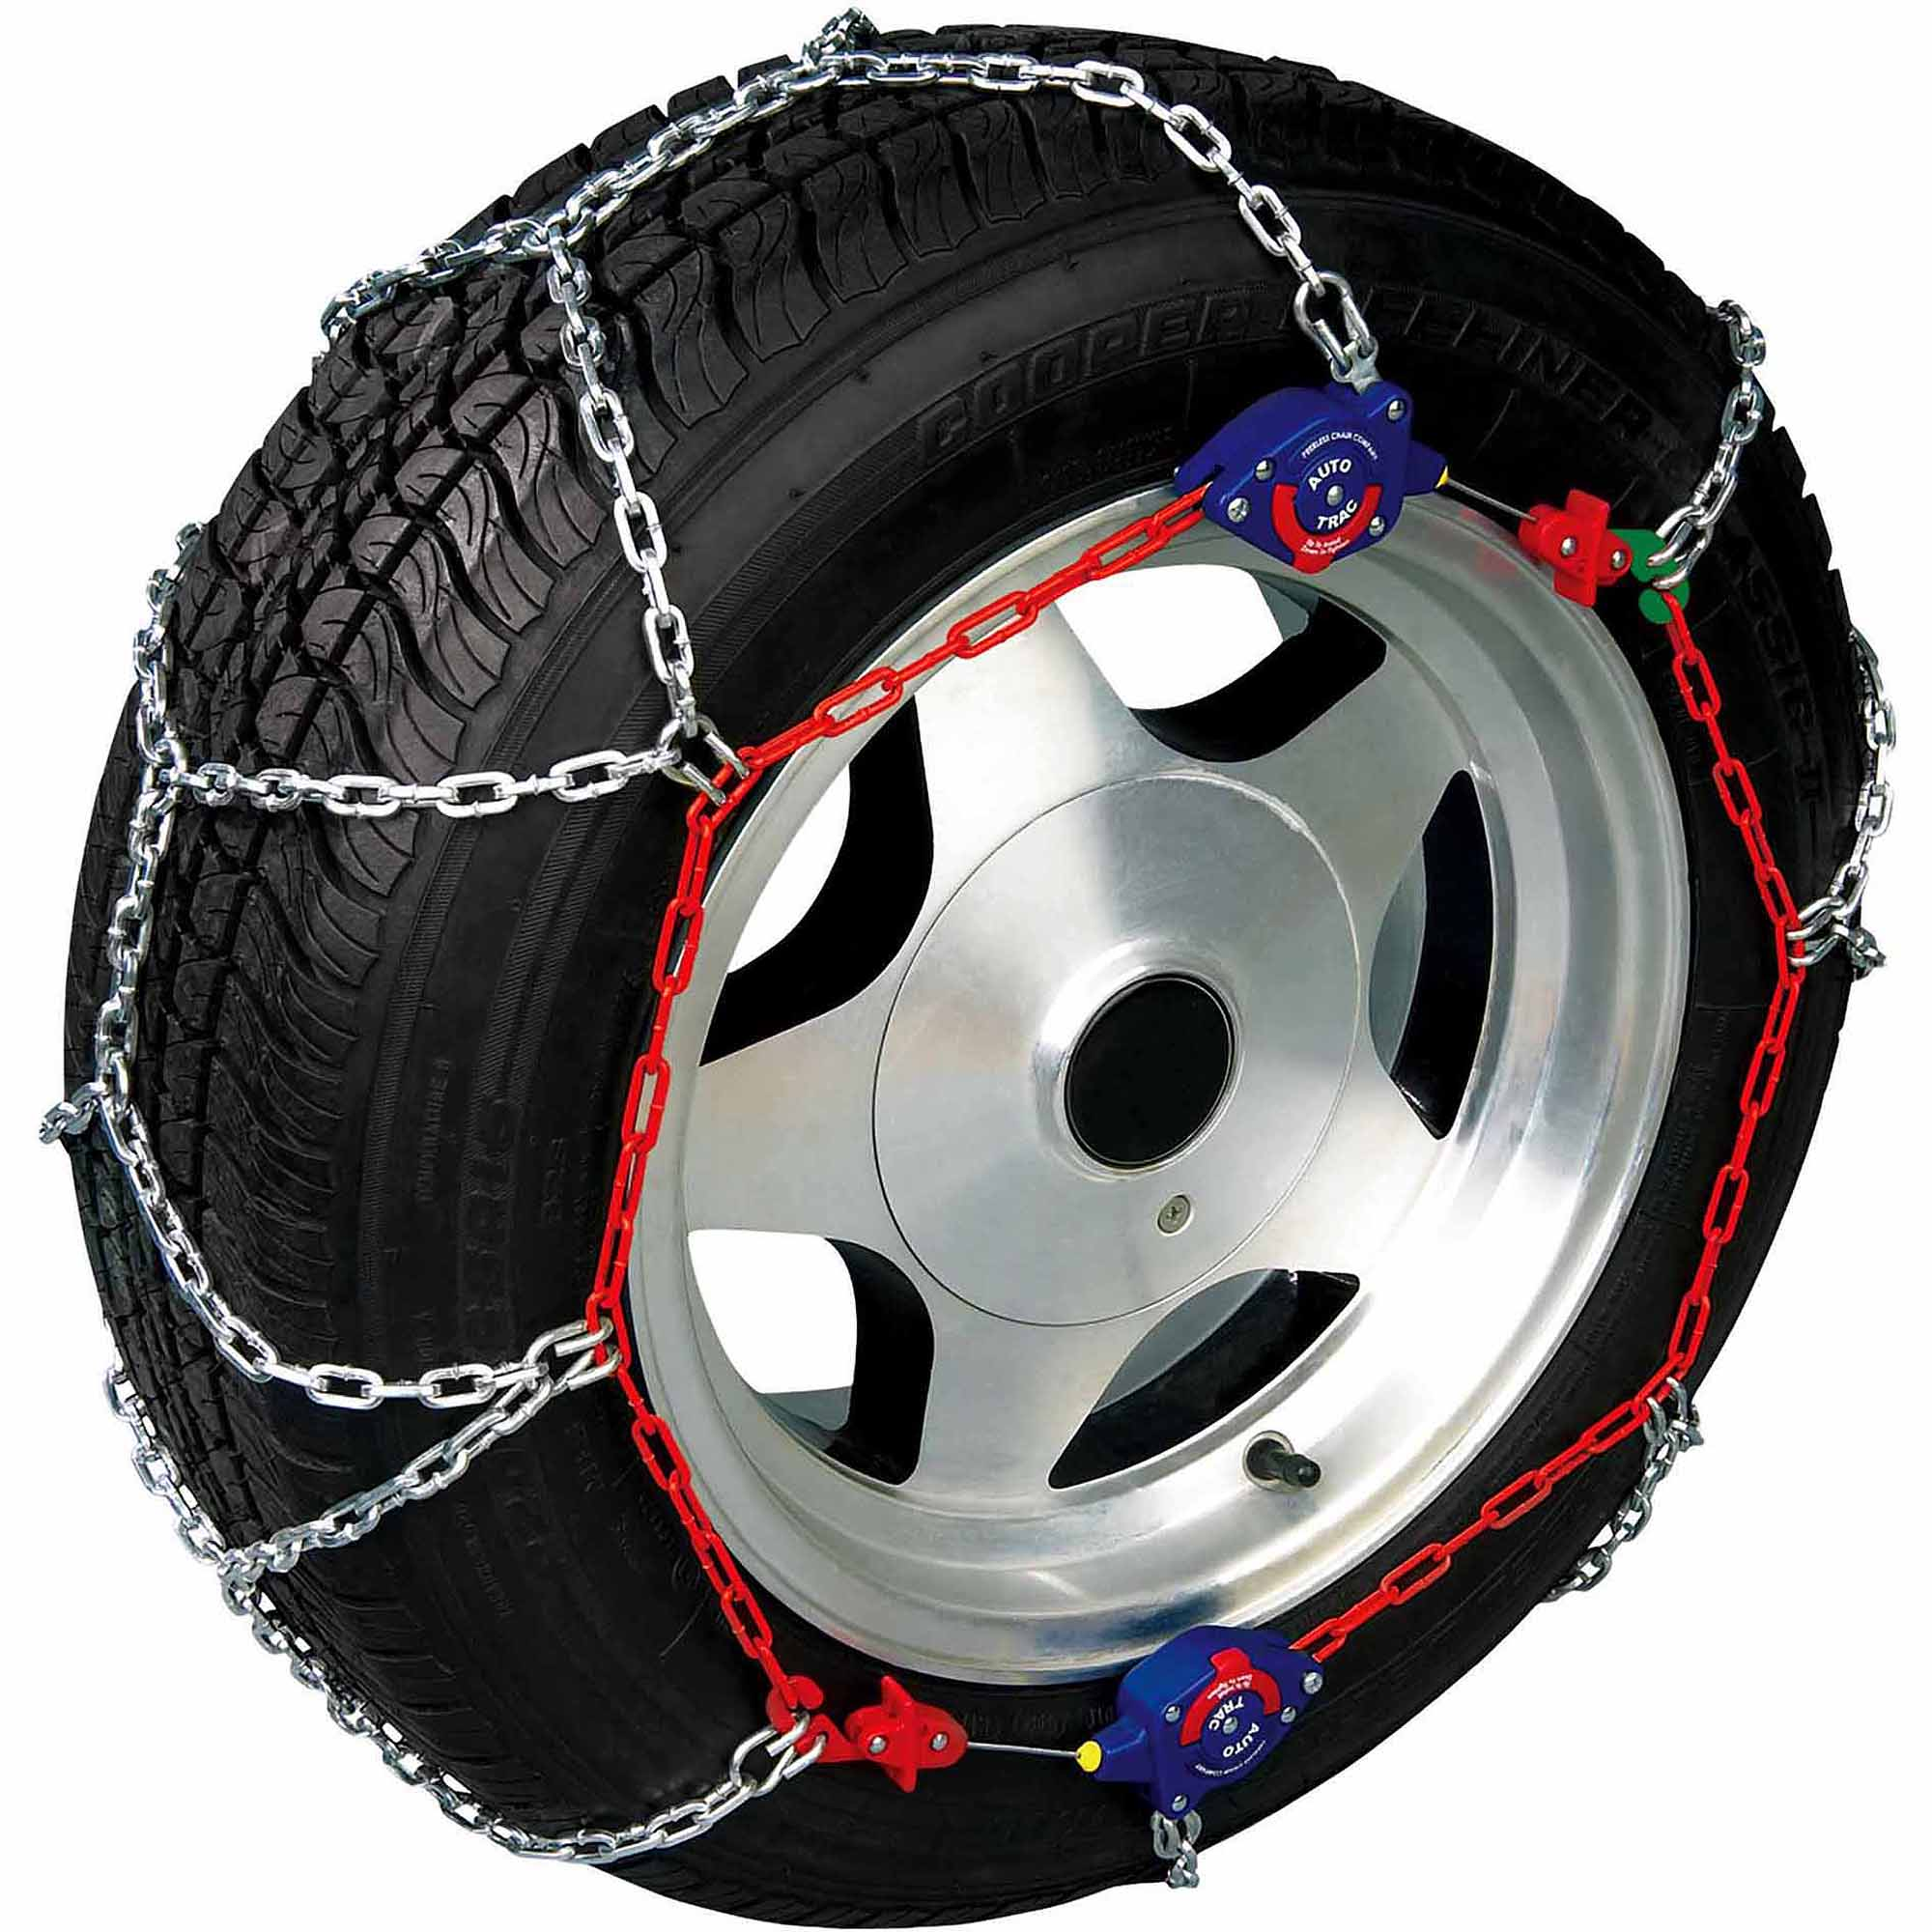 Peerless AutoTrac Chains, #0155510, $39.31, Free Shipping or In-Store Price Match